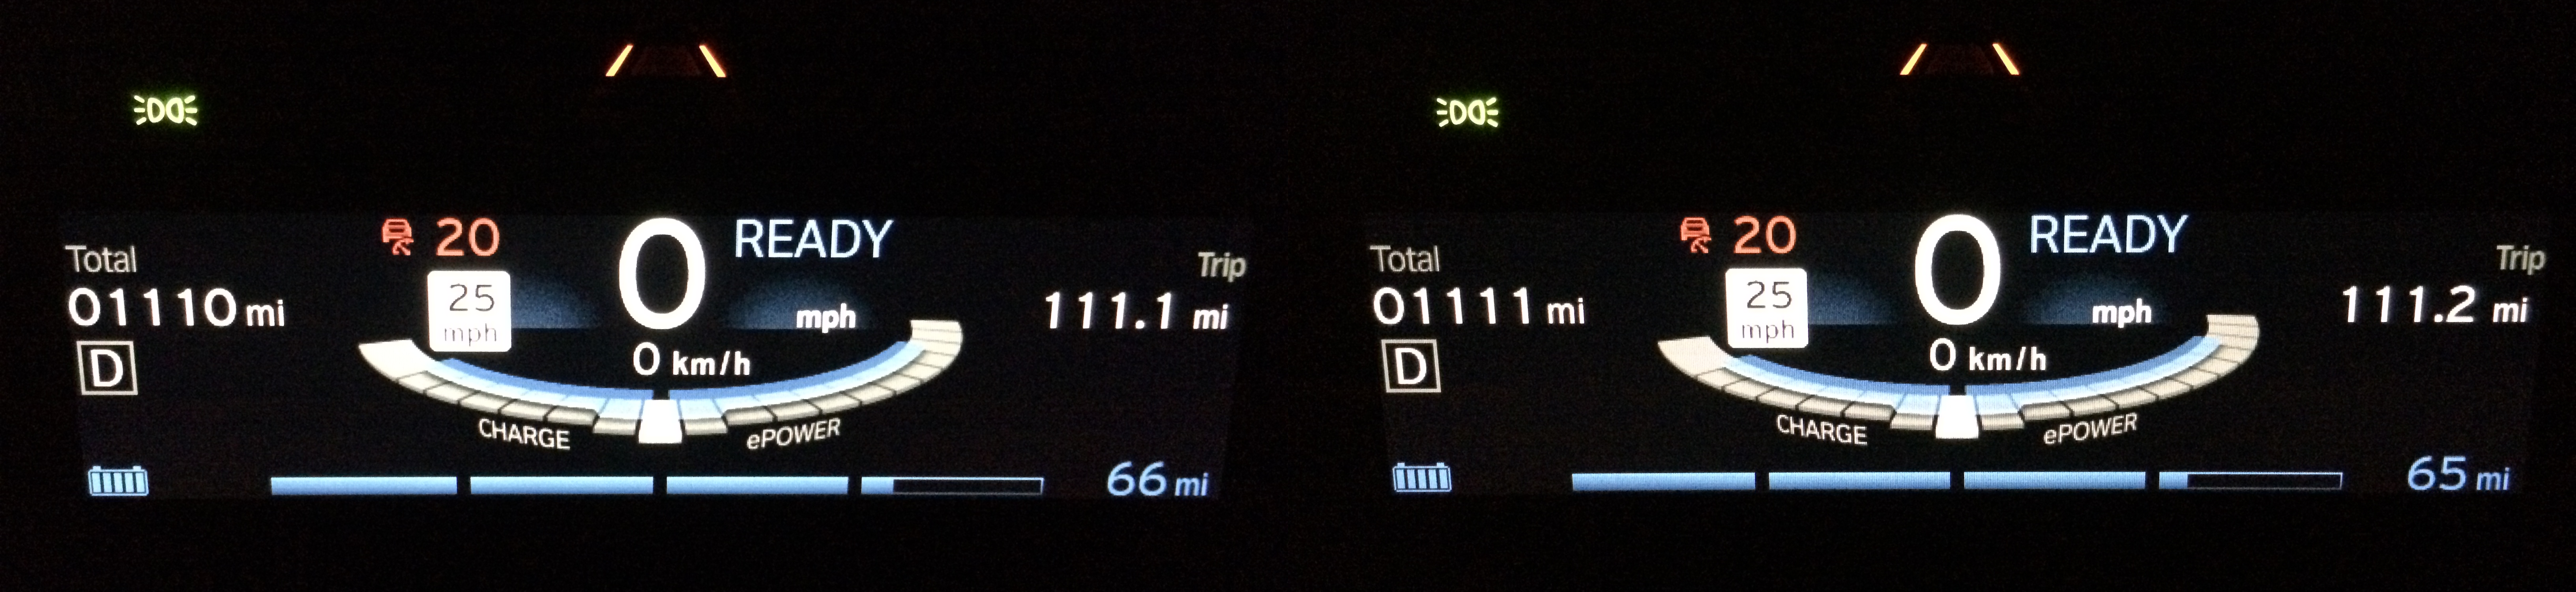 1110-1 and 111.1-2